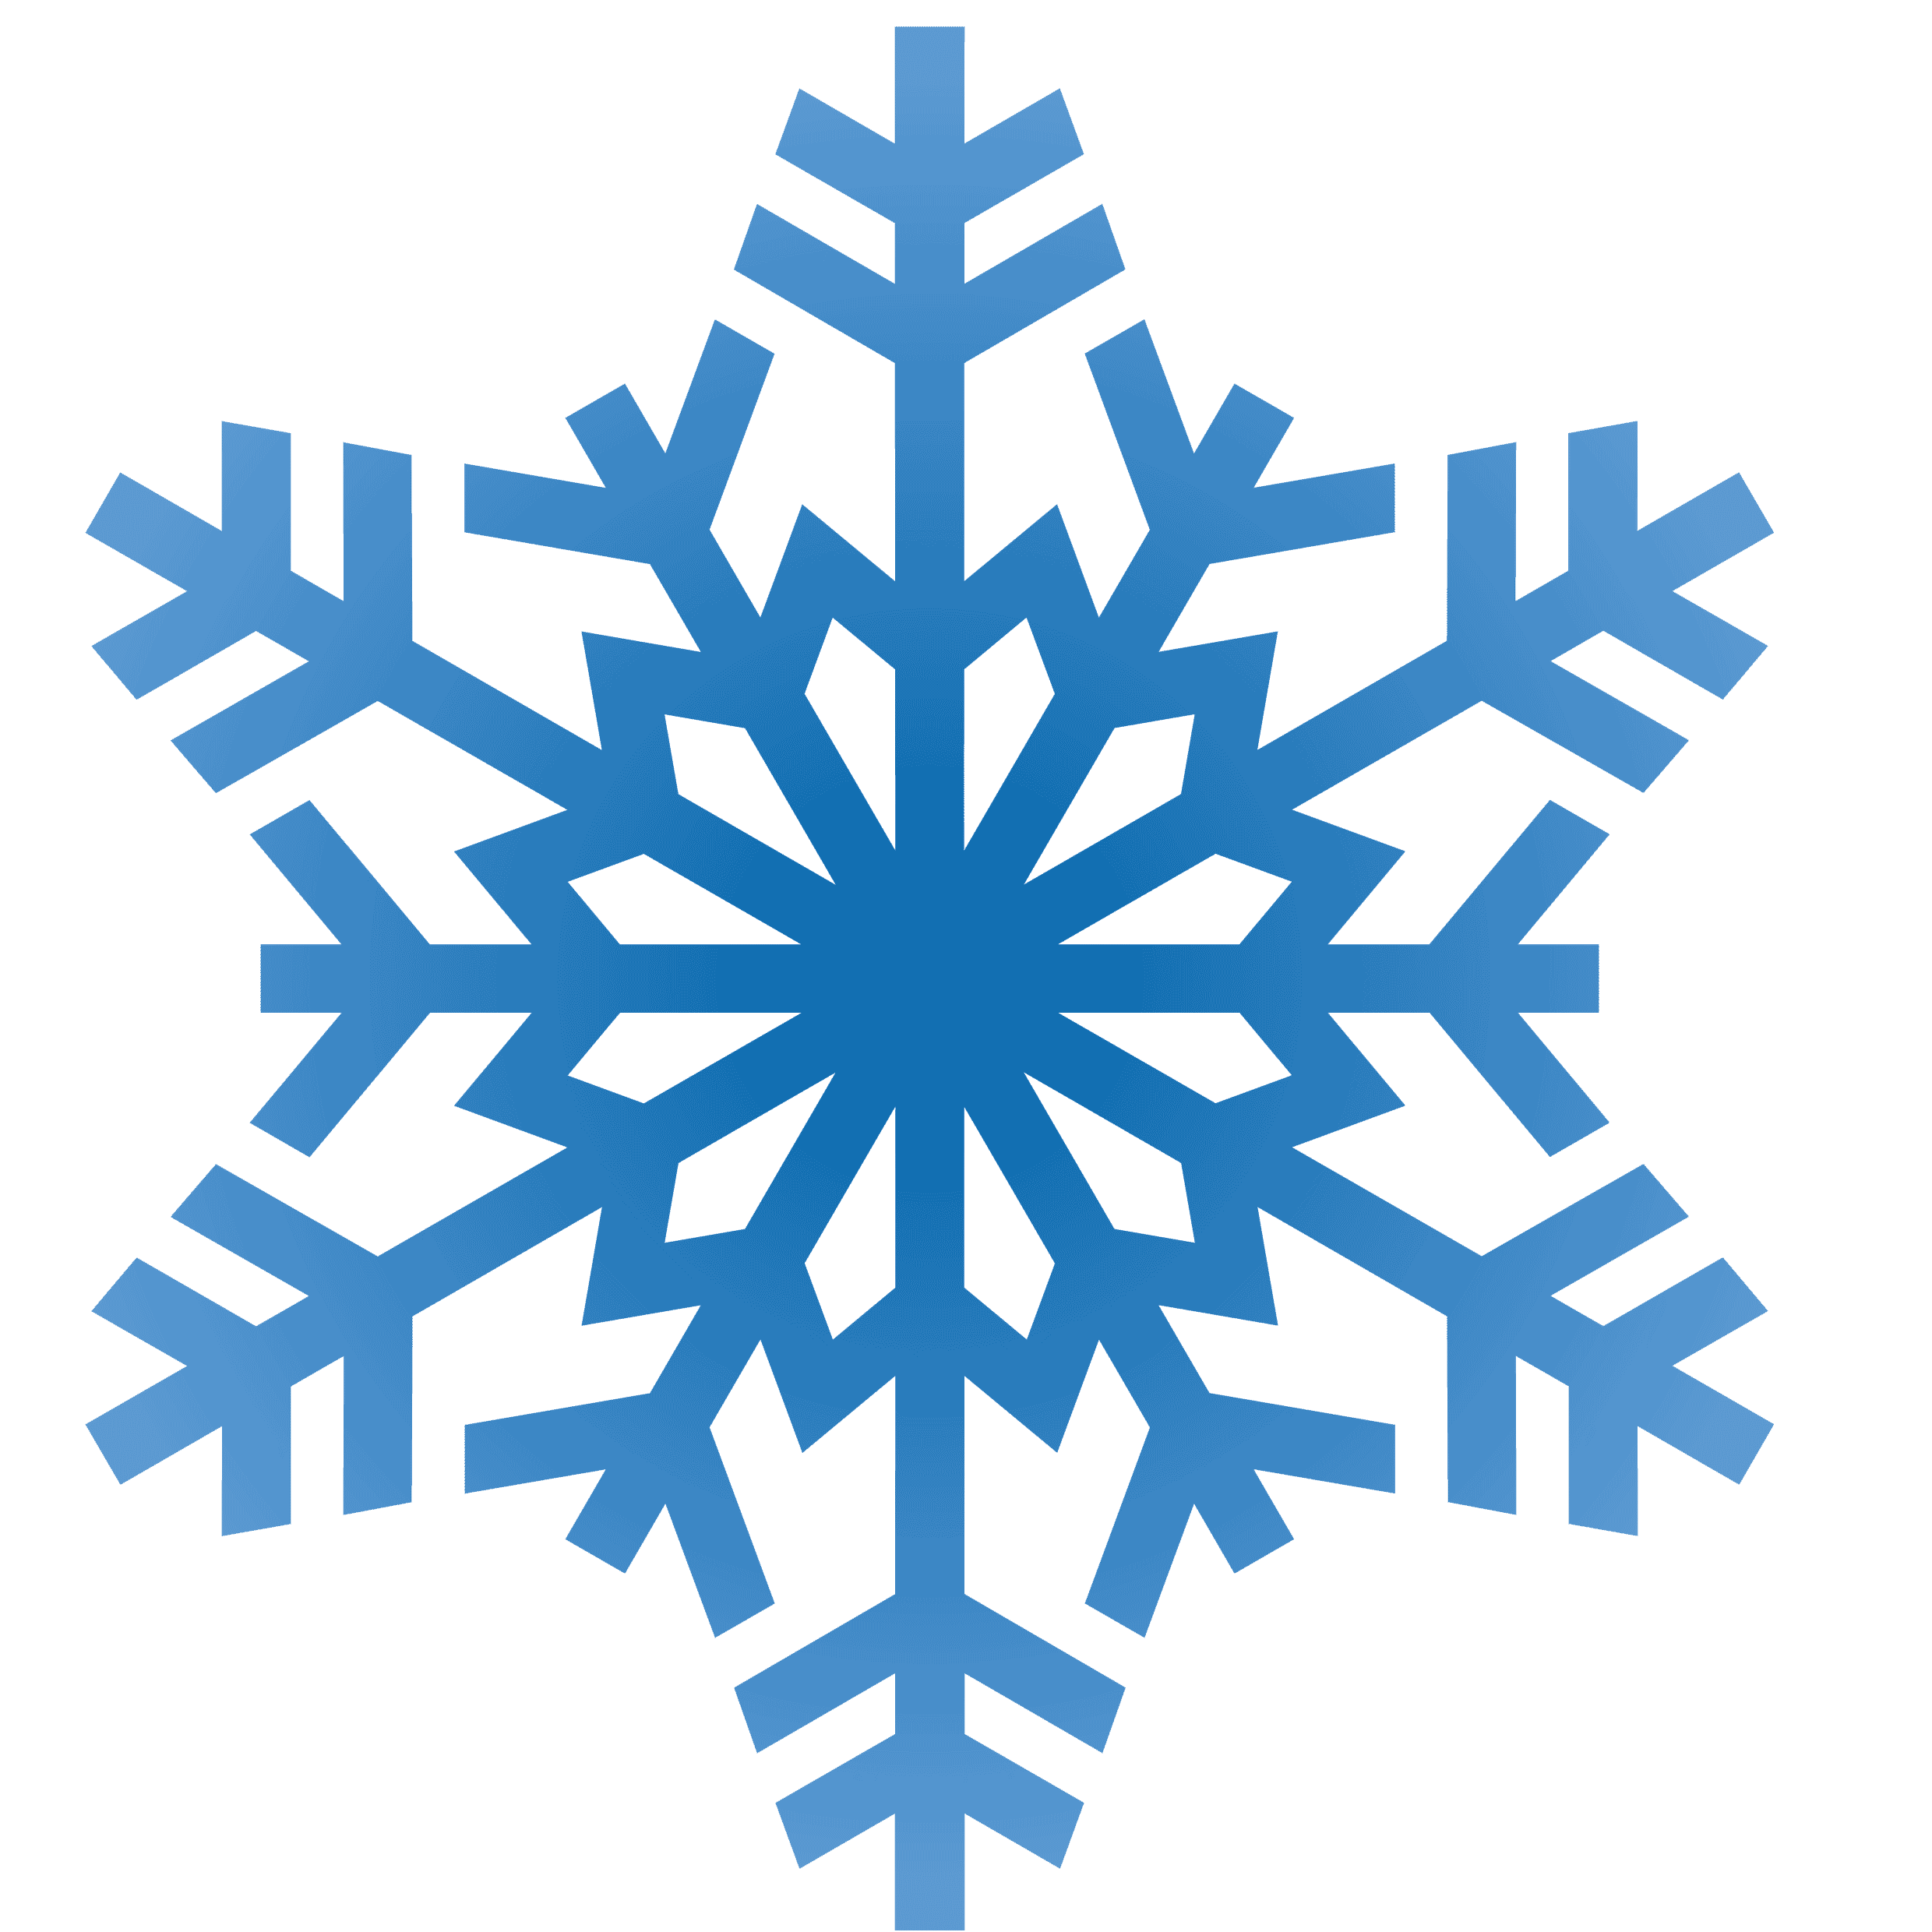 Snowflake vector png. Winter roundup the best